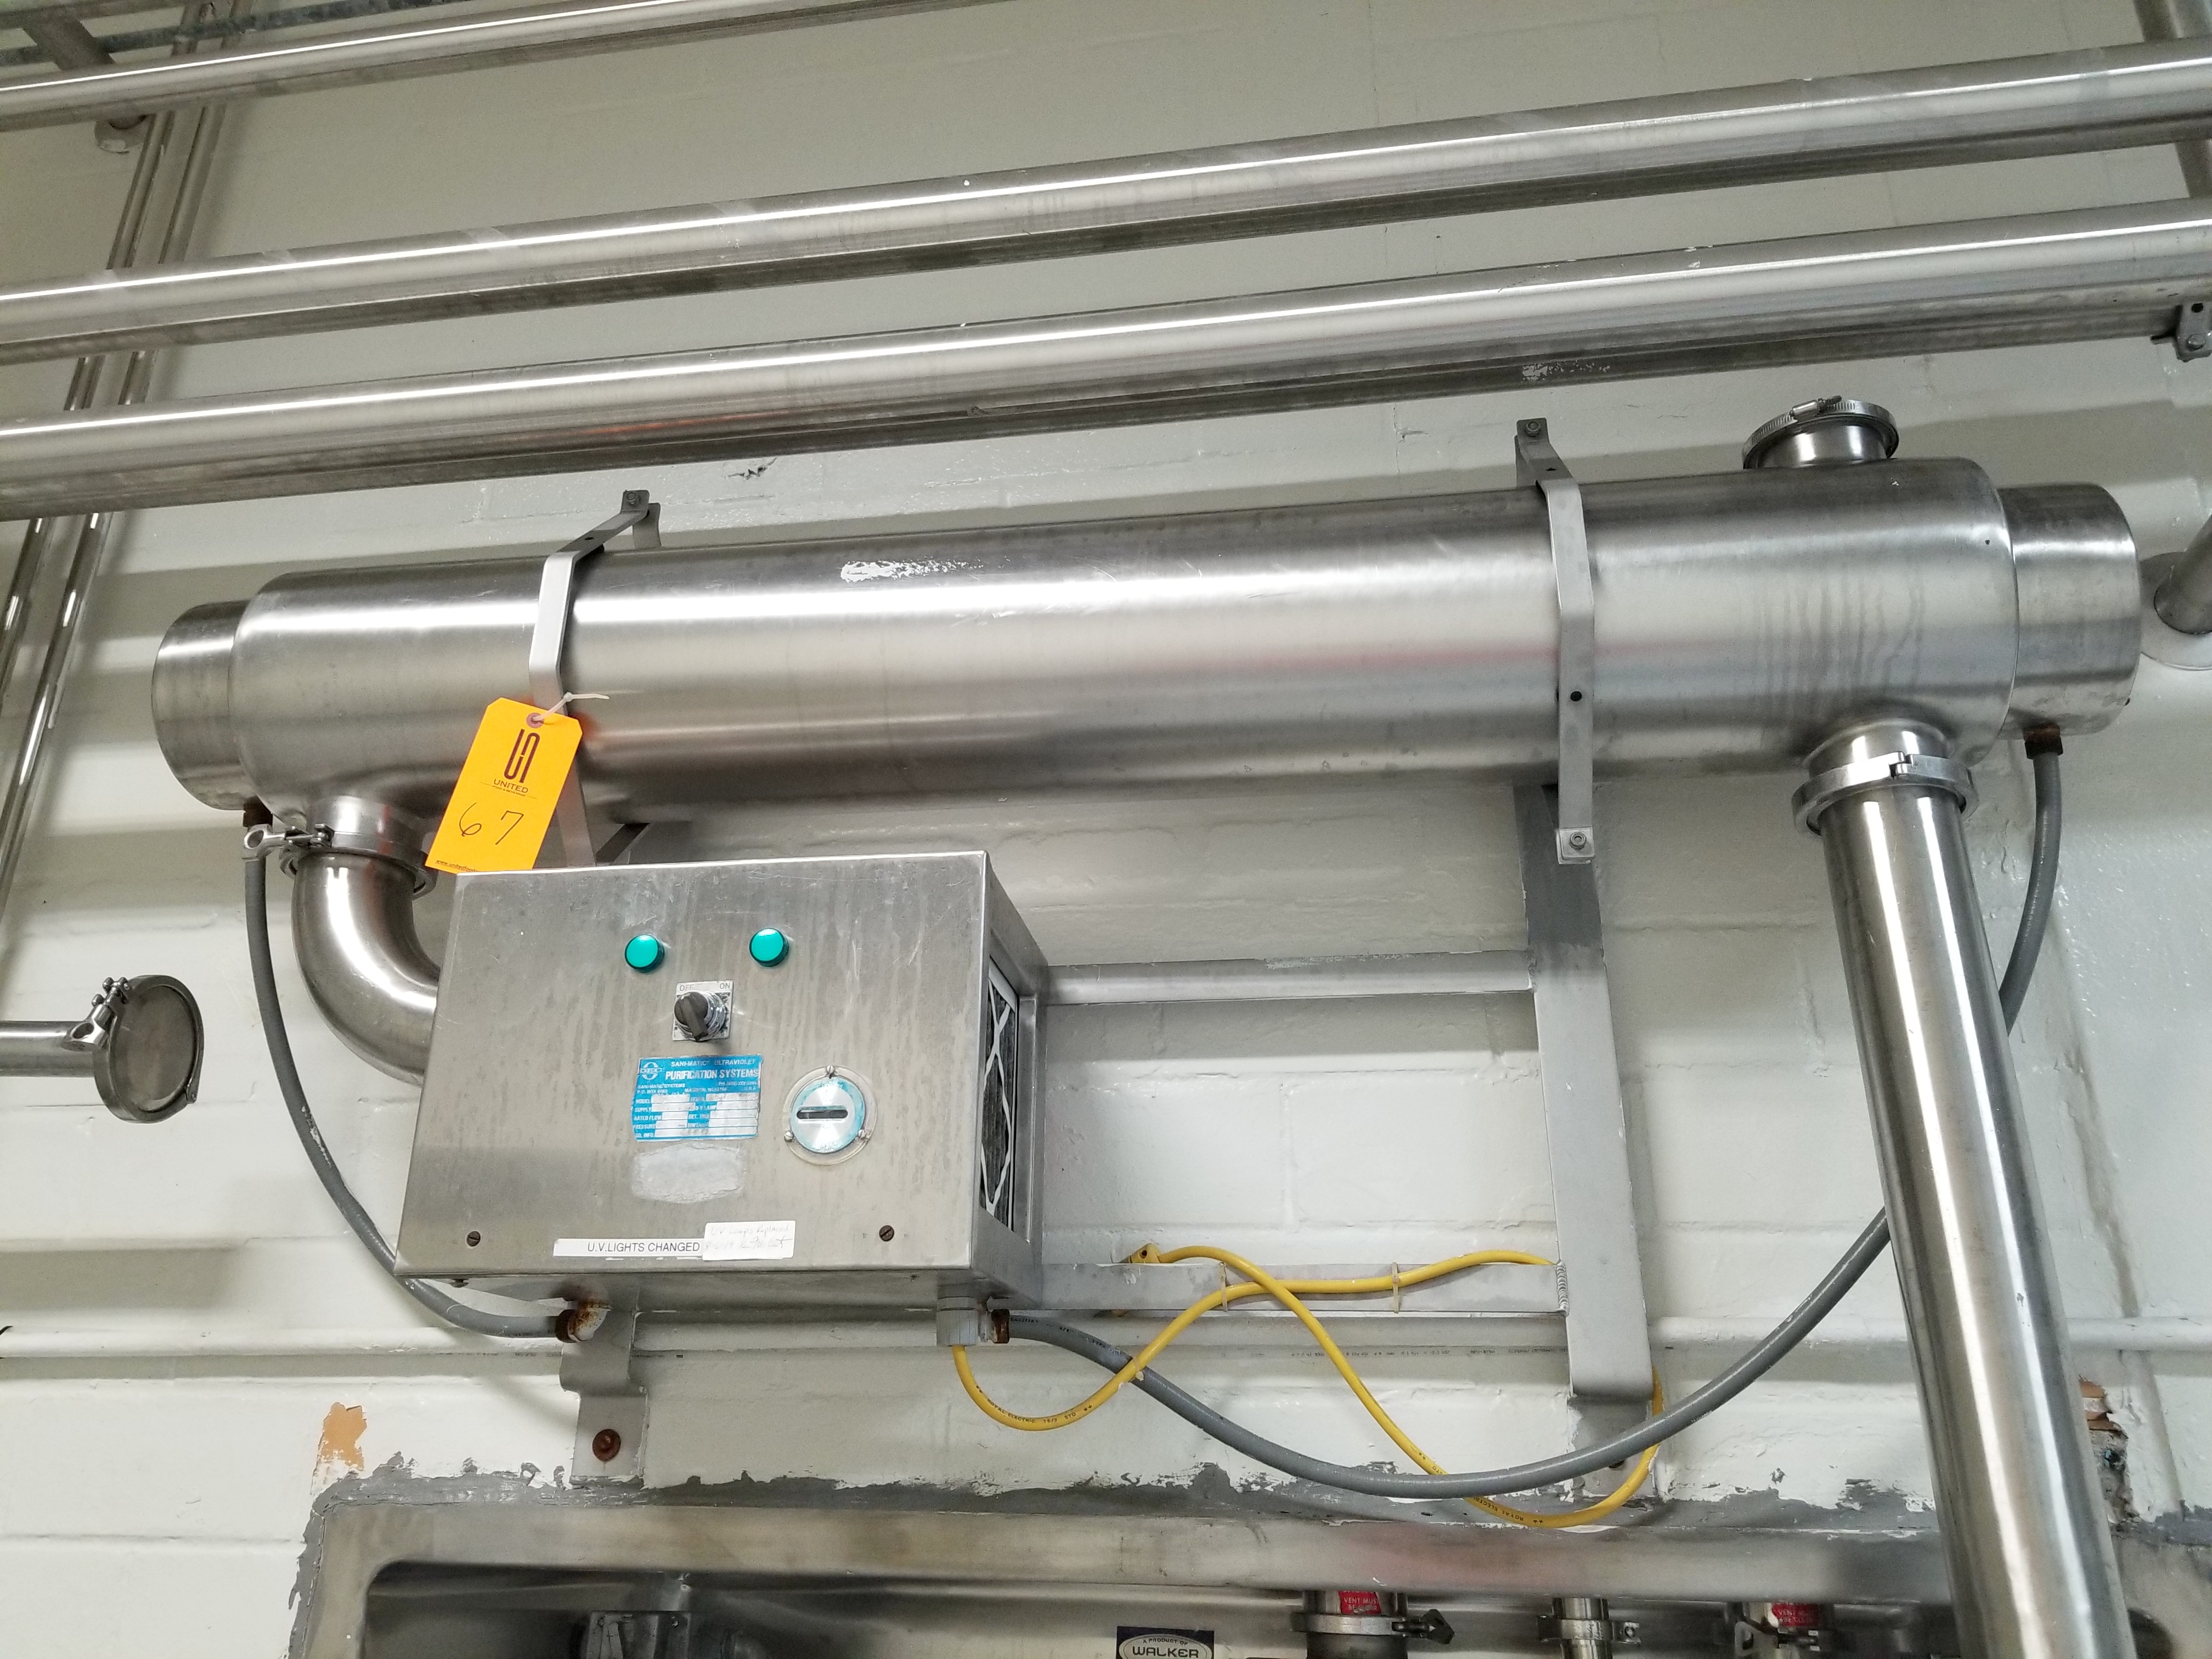 Sani-matic Ultraviolet Purification System